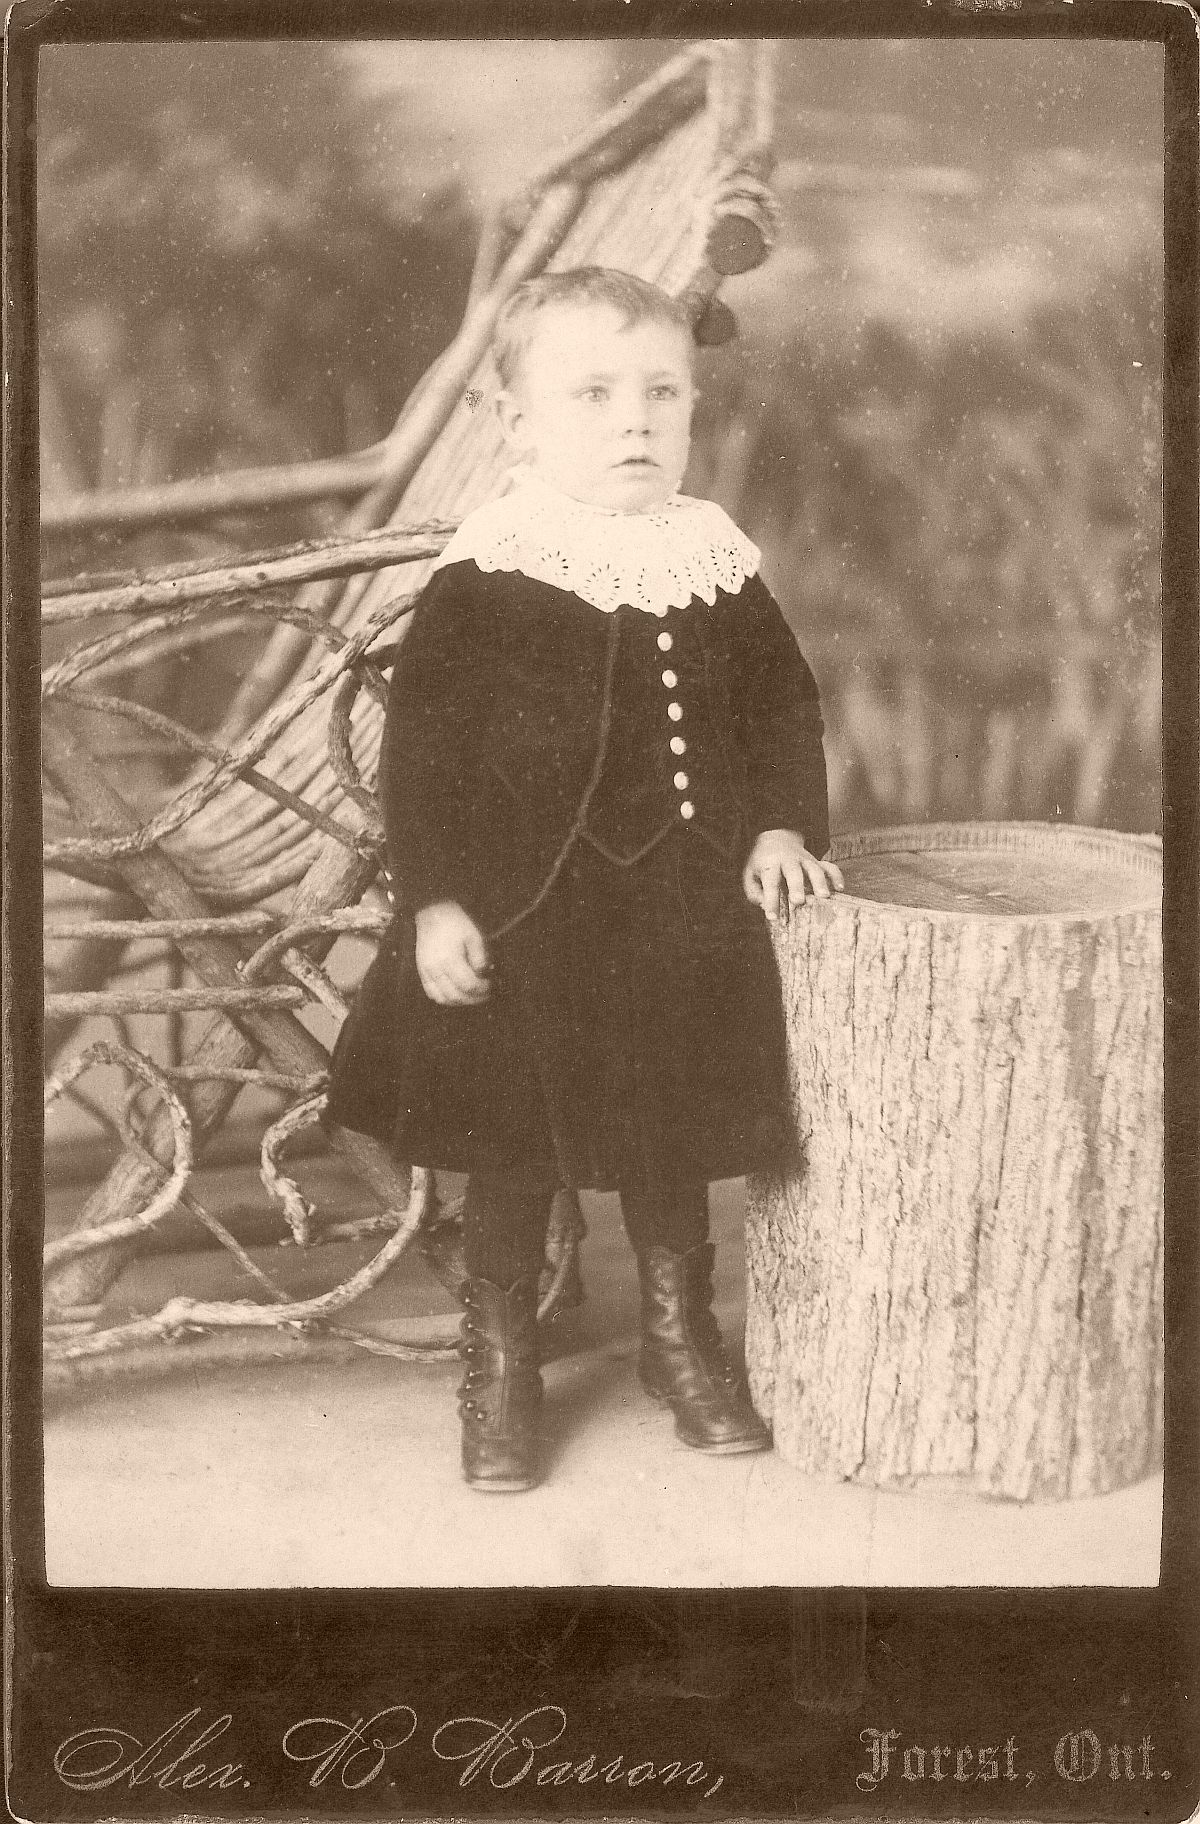 cabinet-cards-1870s-to-1880s-vintage-19th-century-victorian-era-20